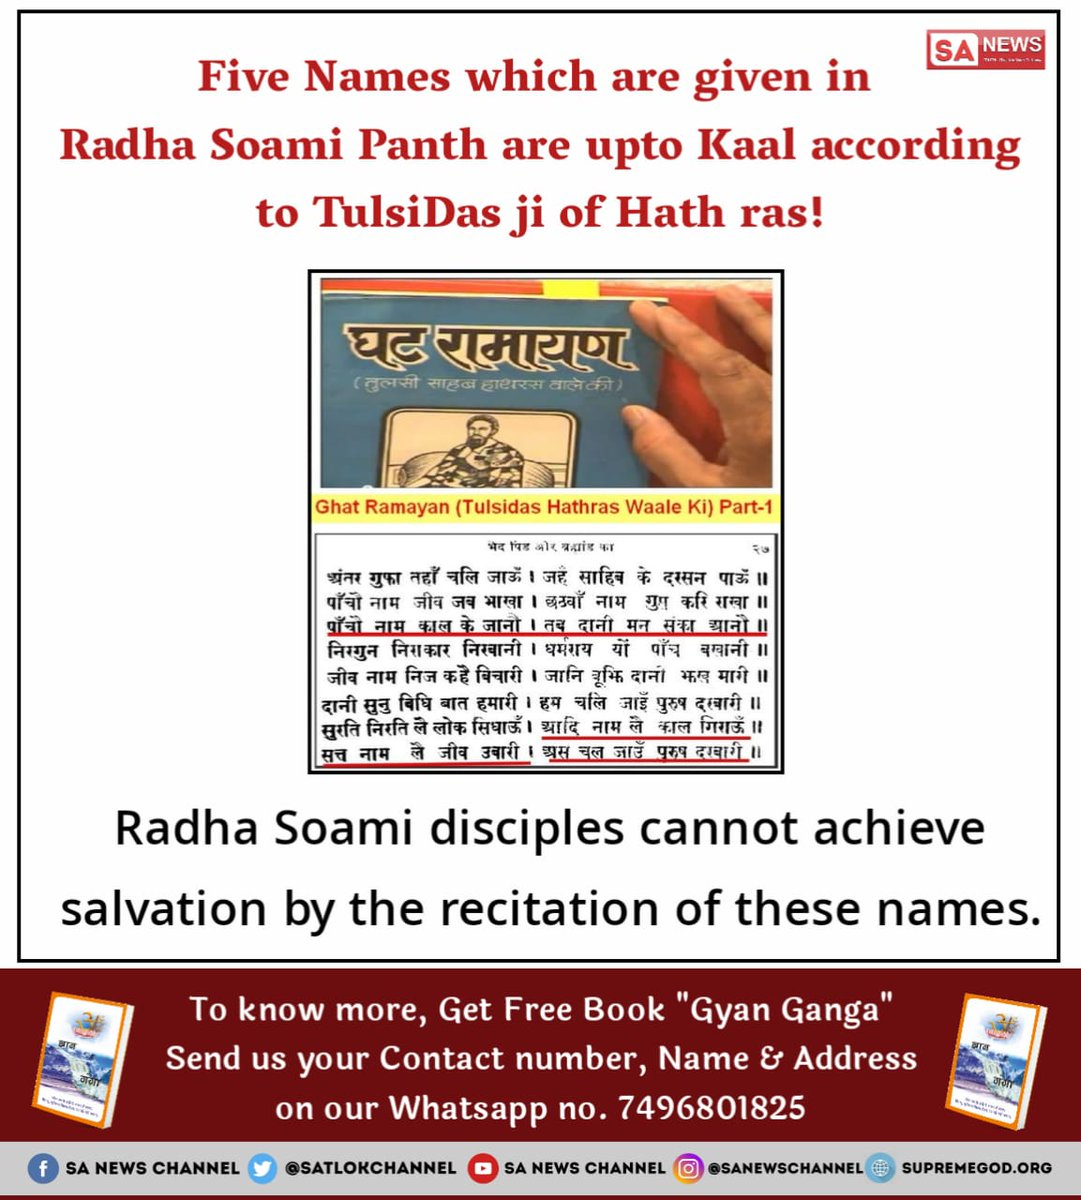 In Ghat Ramayan, TulsiDasji (Hath Ras) have clearly mentioned about the 5 naams given in RadhaSoami panth. TulsiDasji has described these 5naams as those of bhakti of Kaal. RadhaSoami disciples cant achieve salvation by these naams #ThursdayThoughts